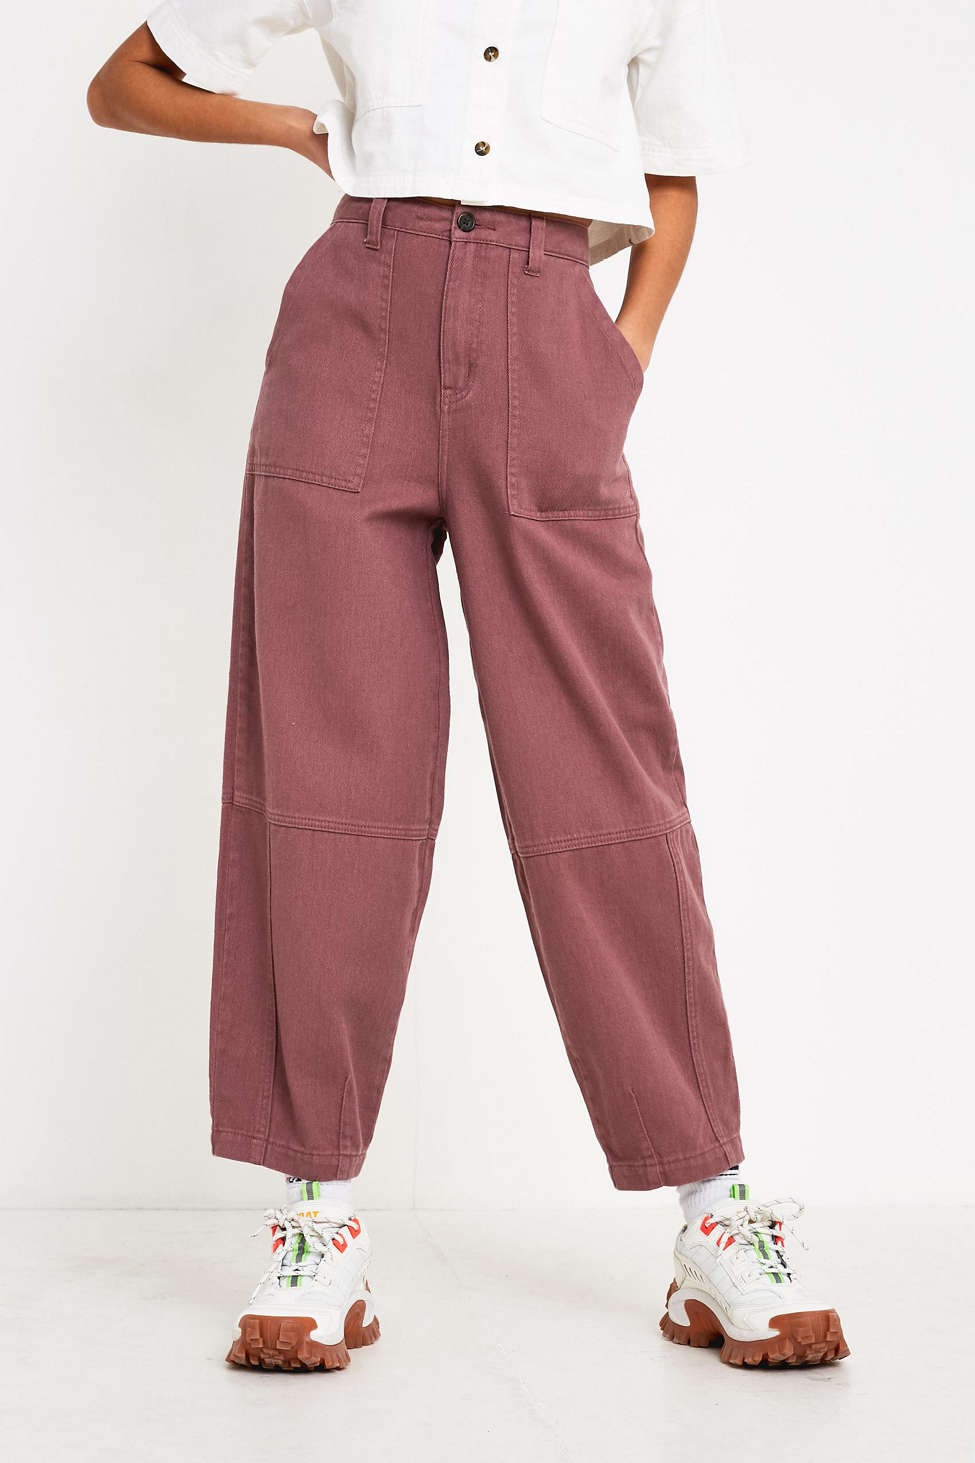 Uo Panelled Cocoon Pant by Urban Outfitters